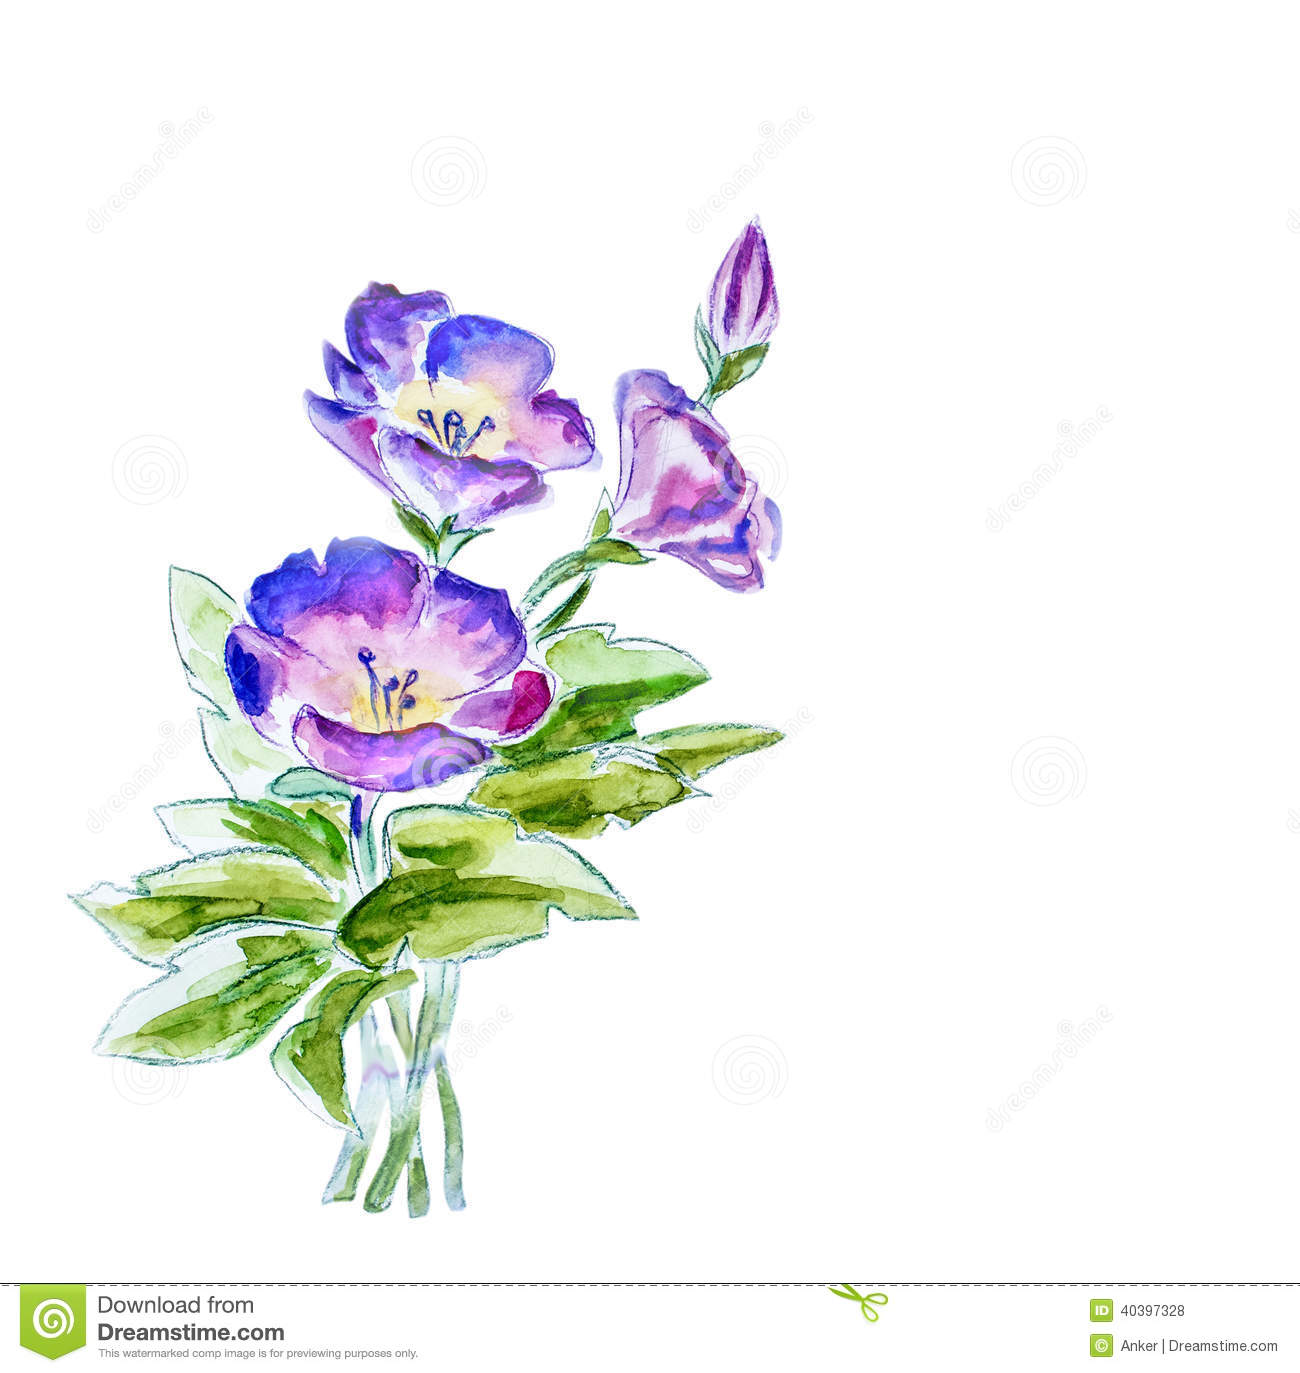 Spring flowers watercolor illustration stock illustration for Spring flowers watercolor